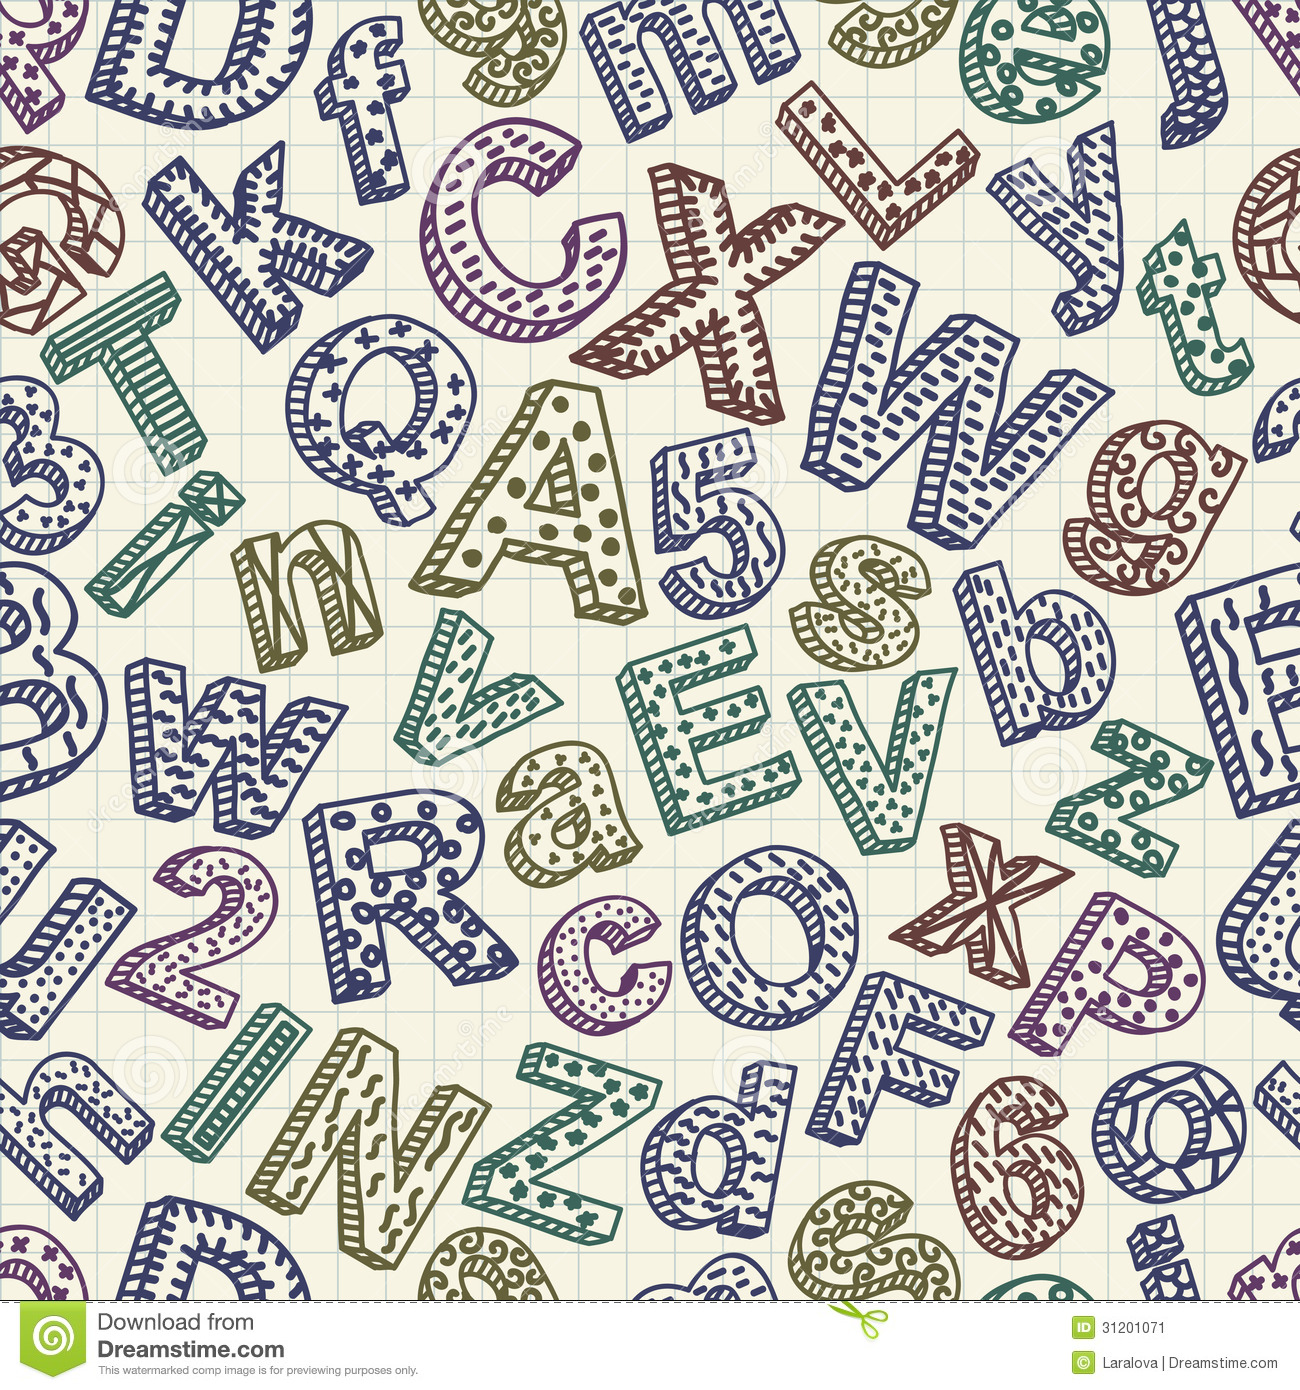 Pattern Font Interesting Inspiration Ideas